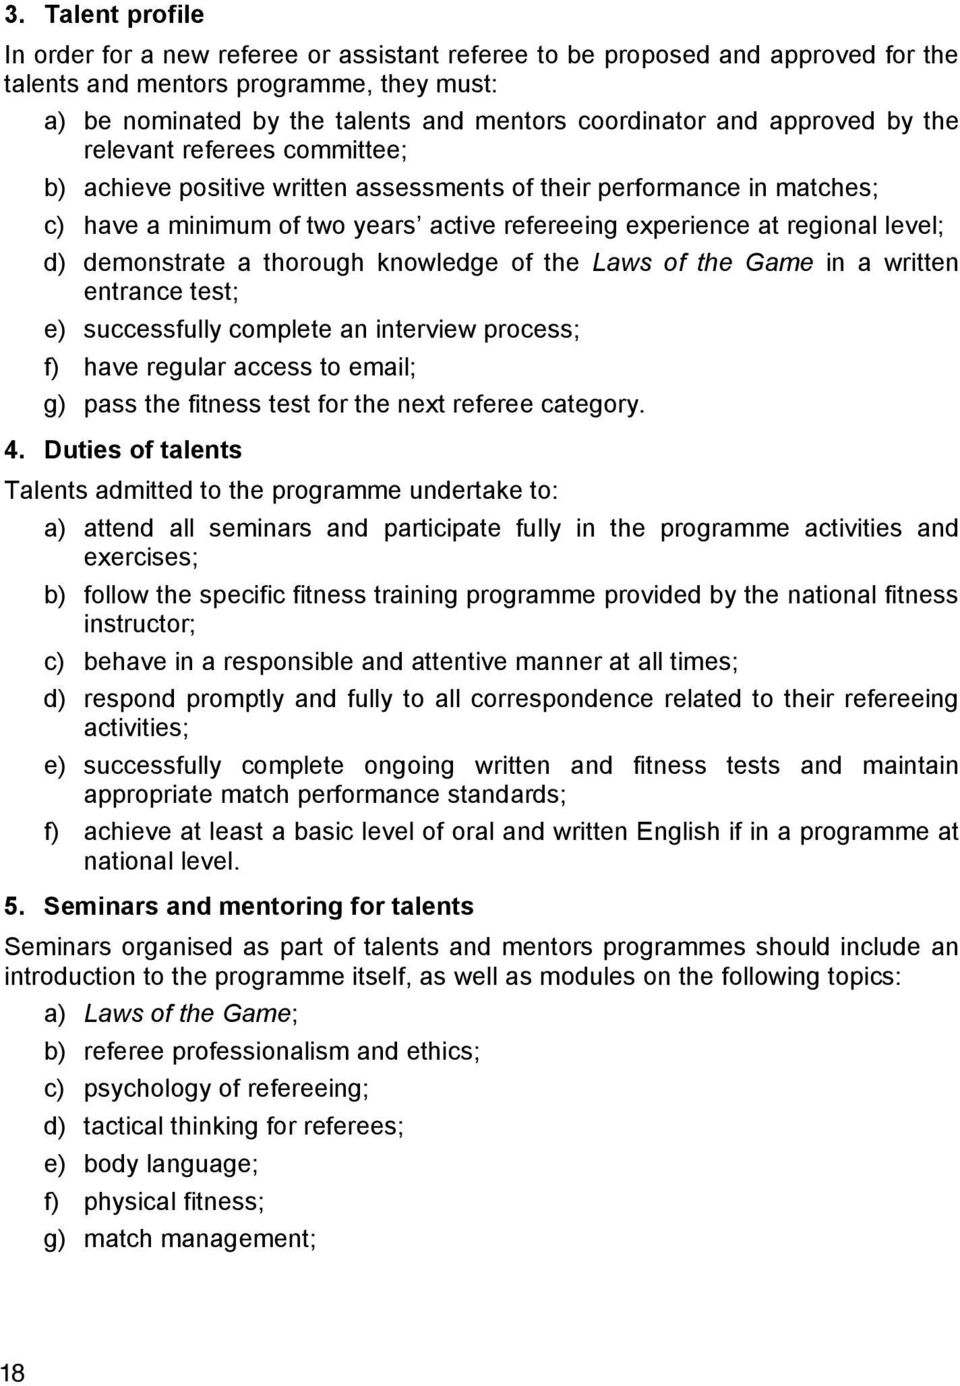 level; d) demonstrate a thorough knowledge of the Laws of the Game in a written entrance test; e) successfully complete an interview process; f) have regular access to email; g) pass the fitness test